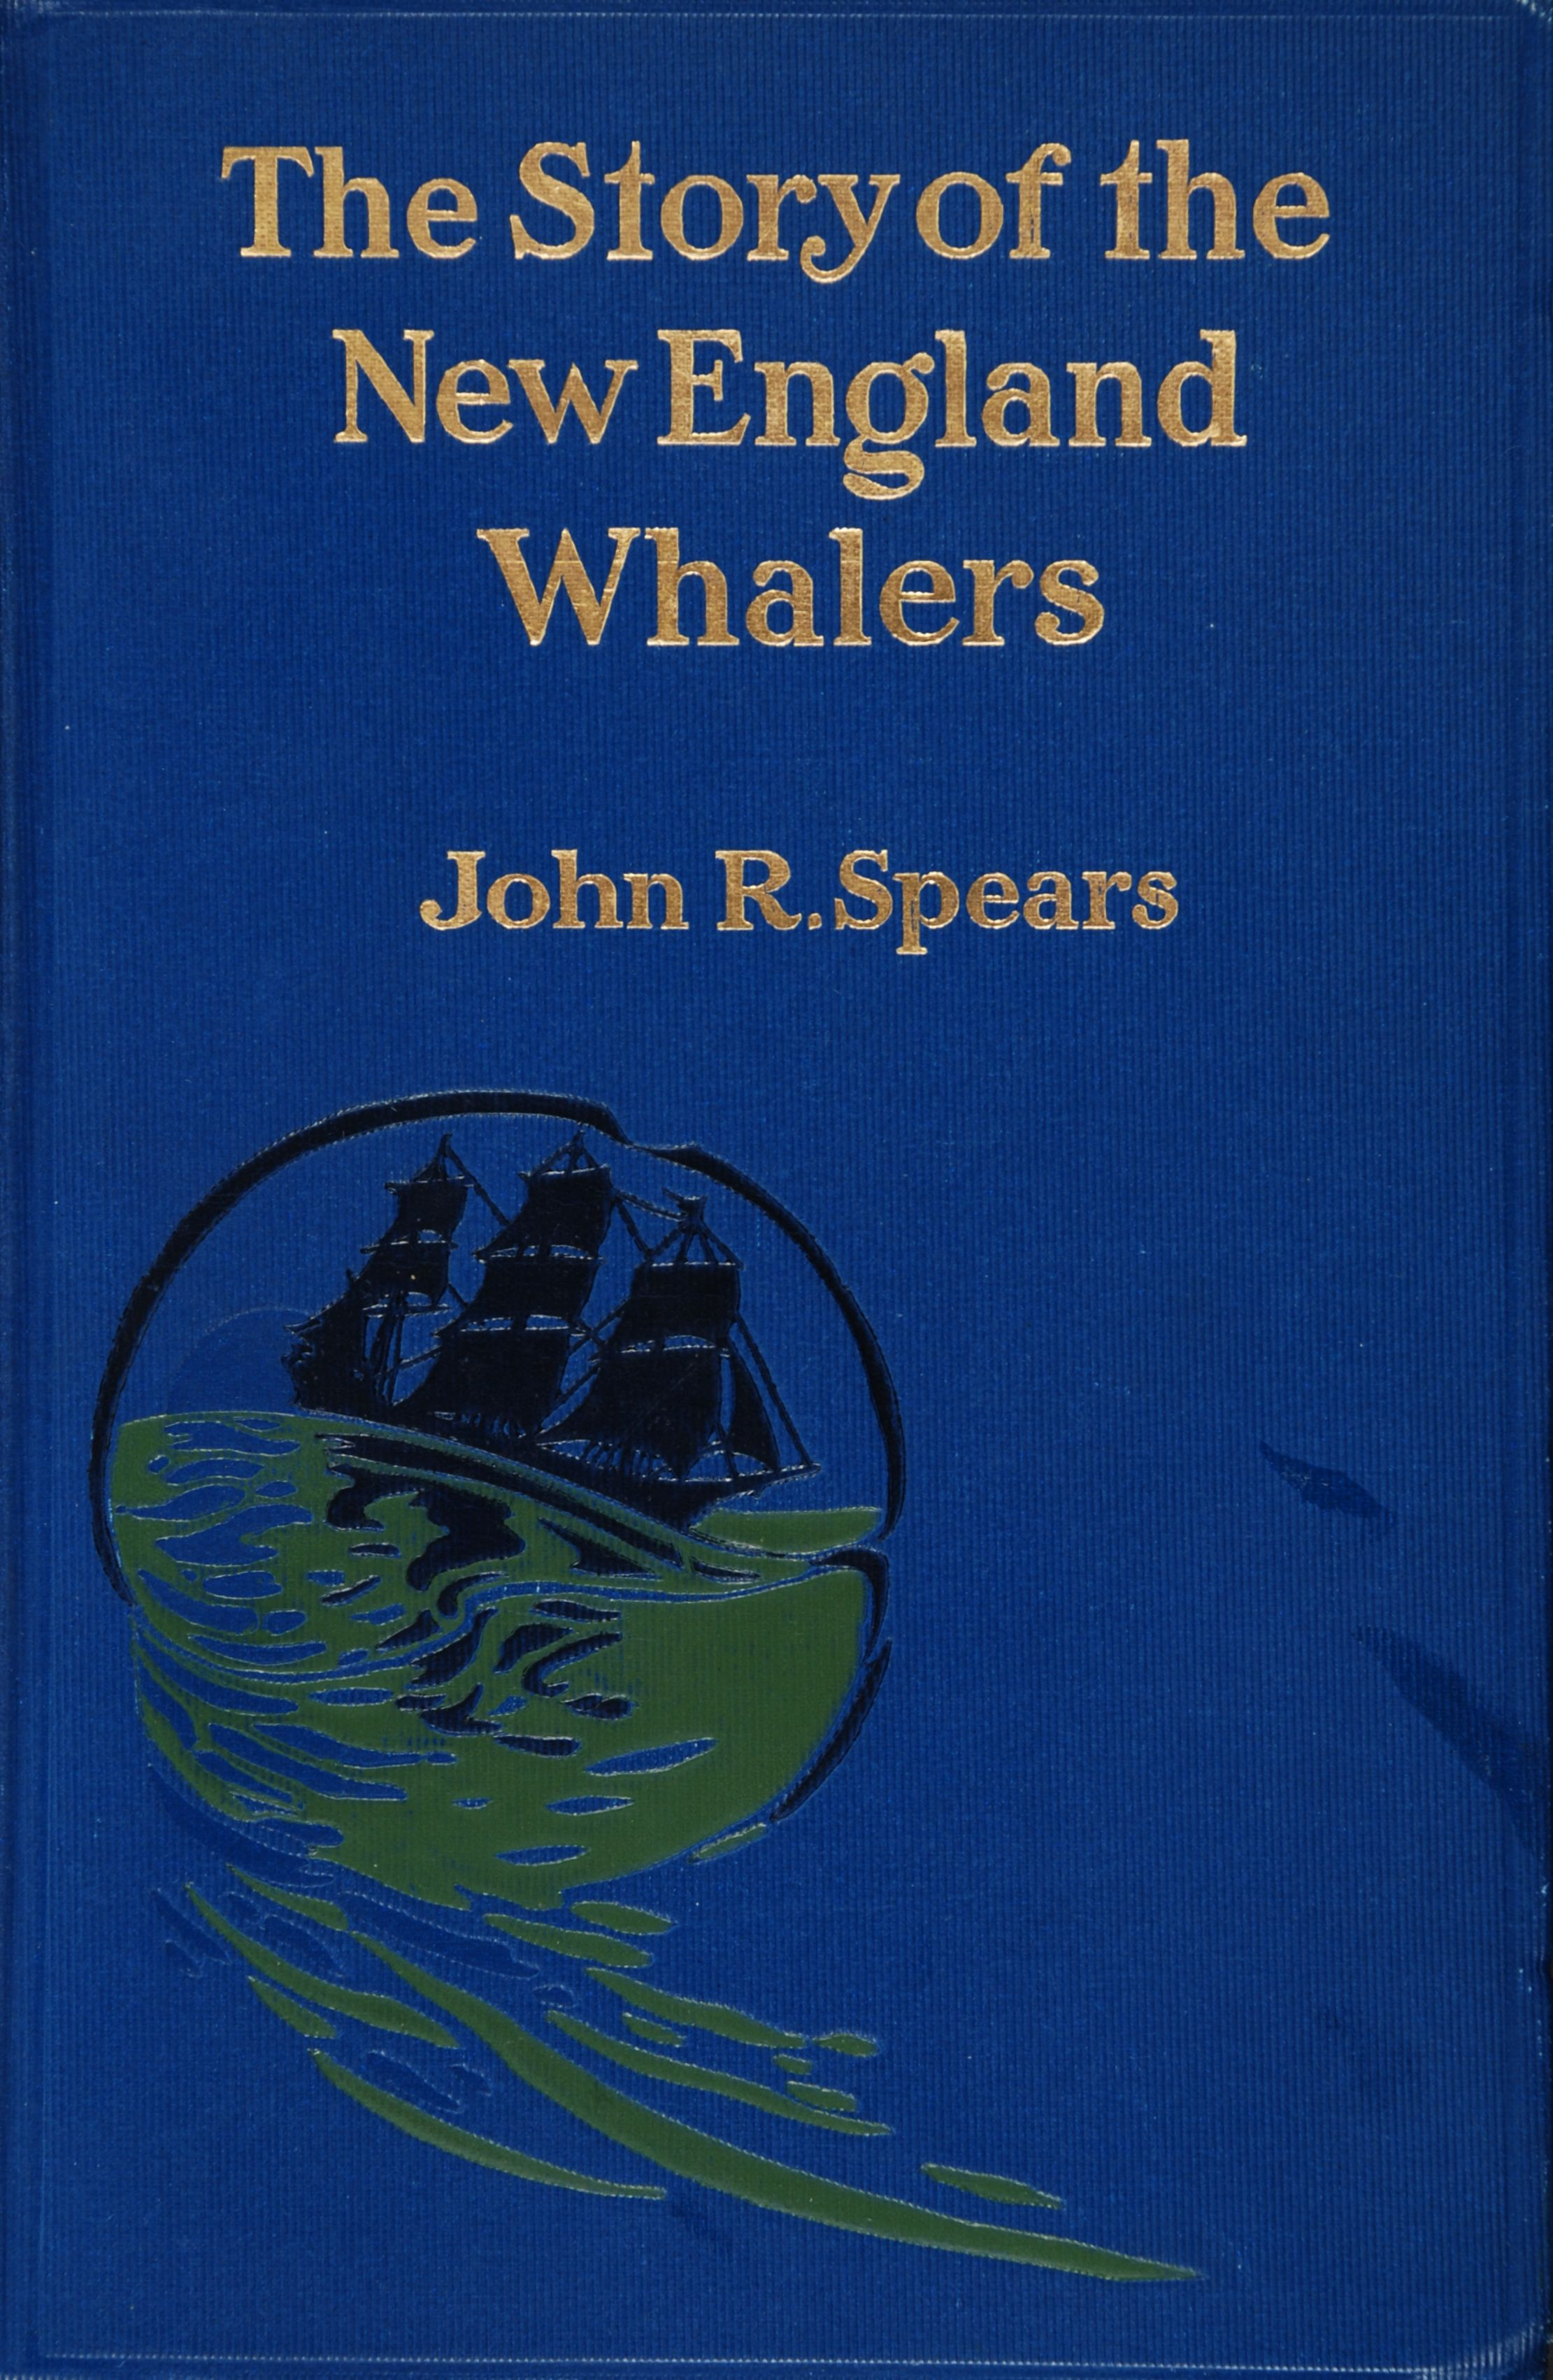 John R. Spears. The Story of the New England Whalers.  New York: Macmillan Company, 1908.